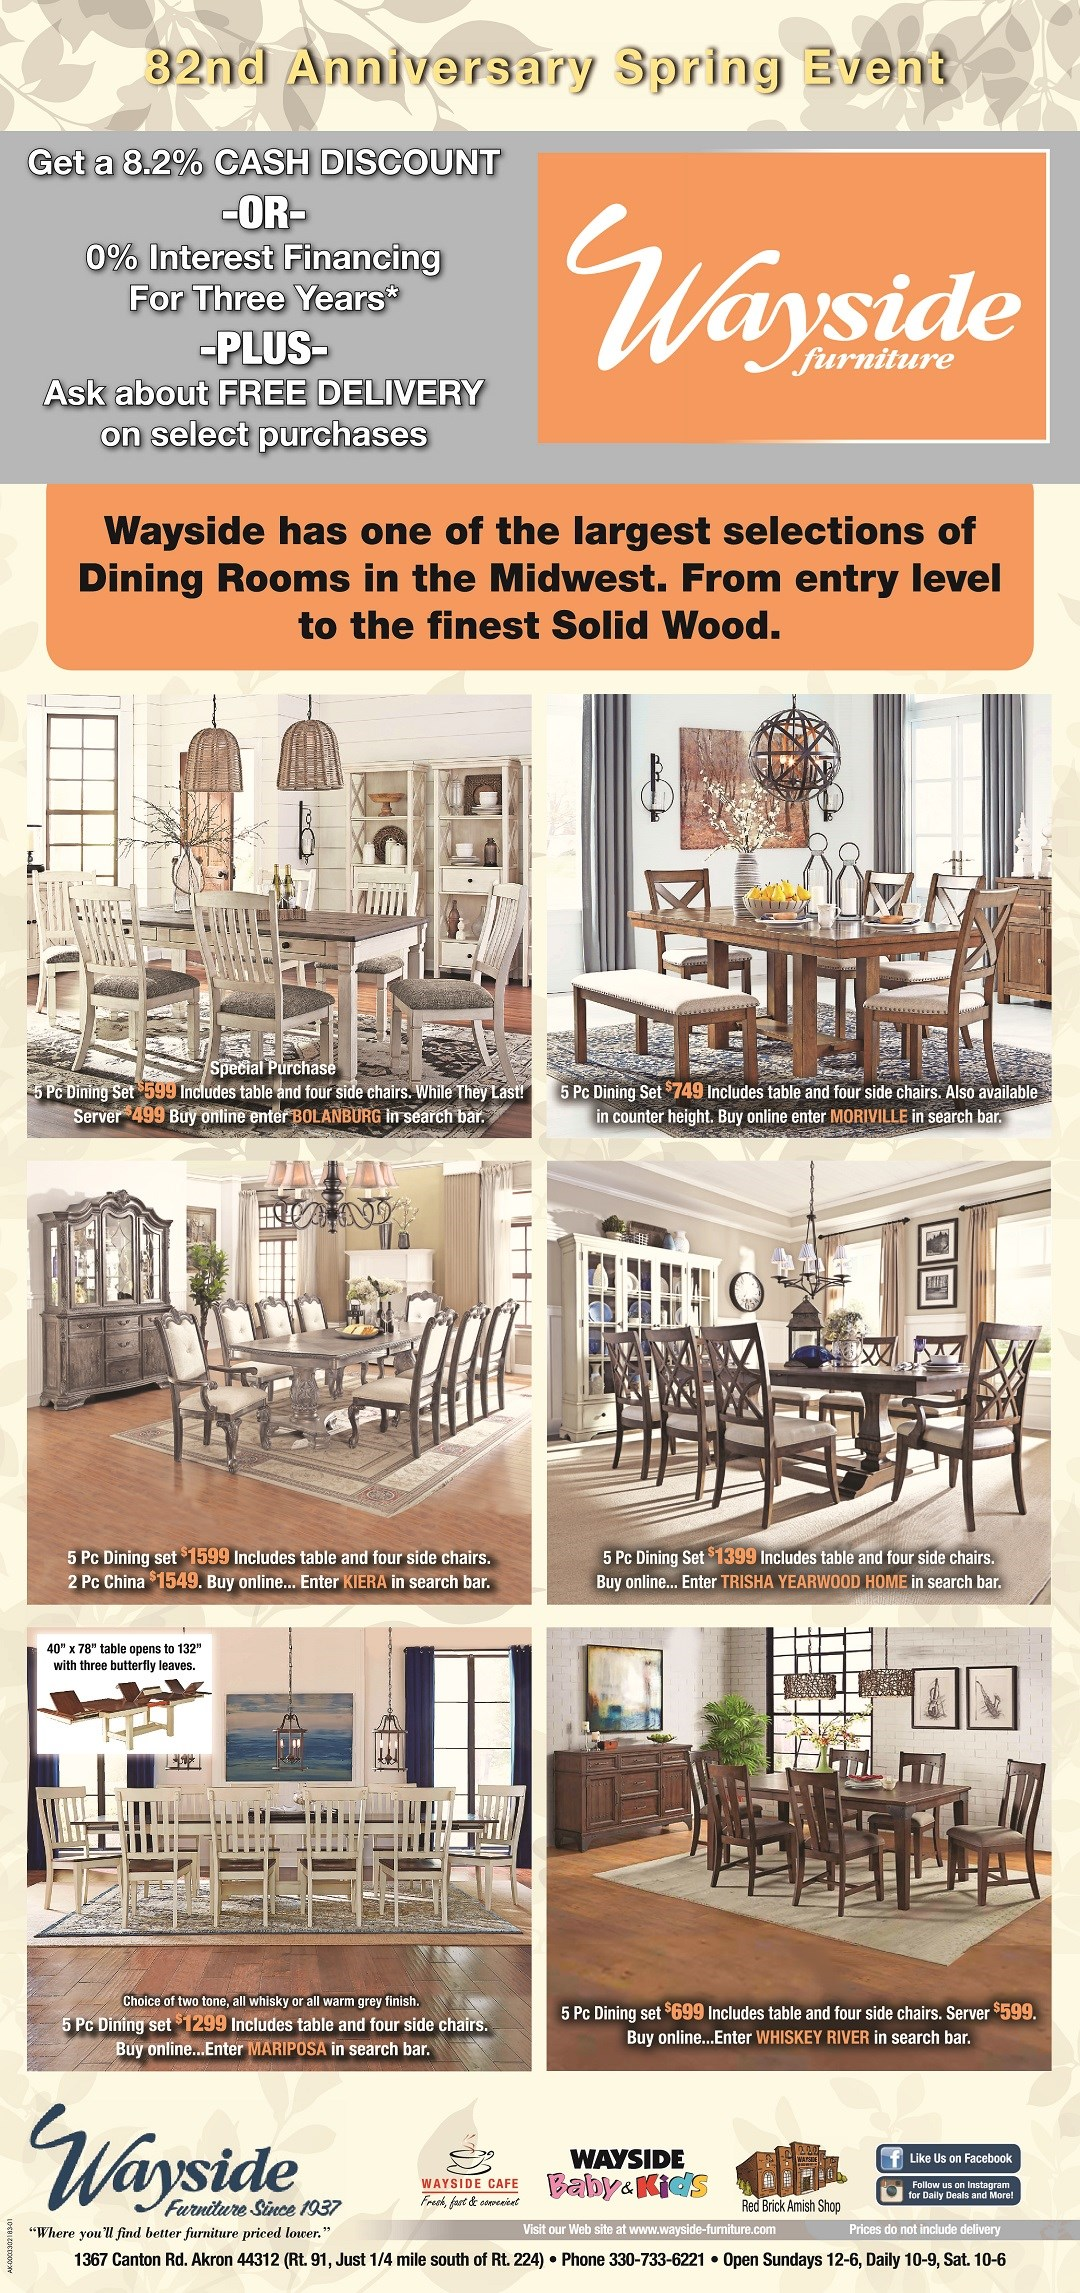 dining room set, table and chairs, stools, server, bench seat, Ashley dining room, Liverty dining, Trisha Yearwood Home,